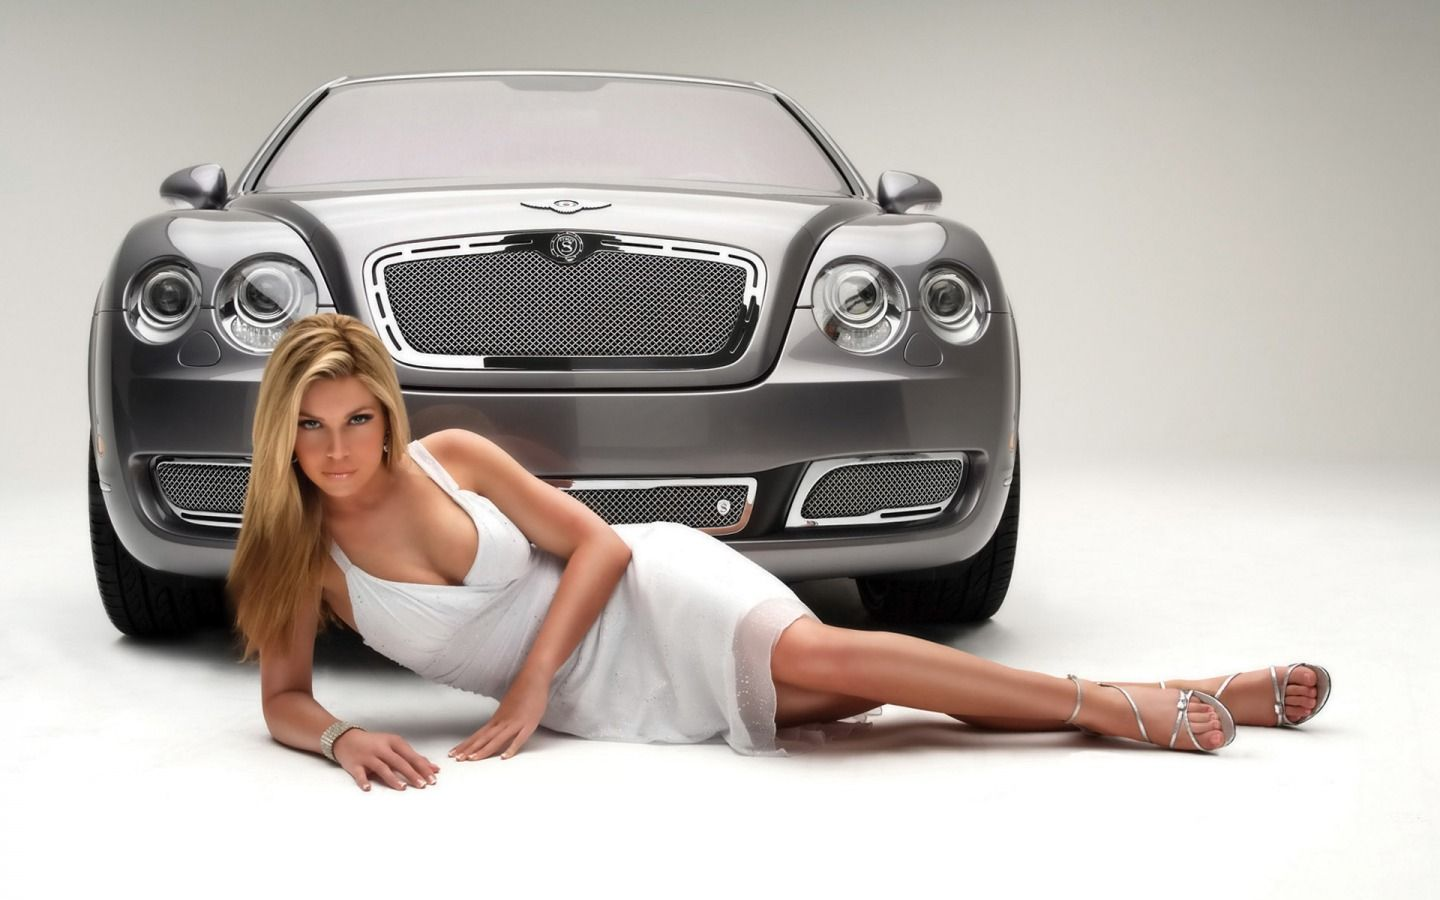 Girls With Cars Wallpapers